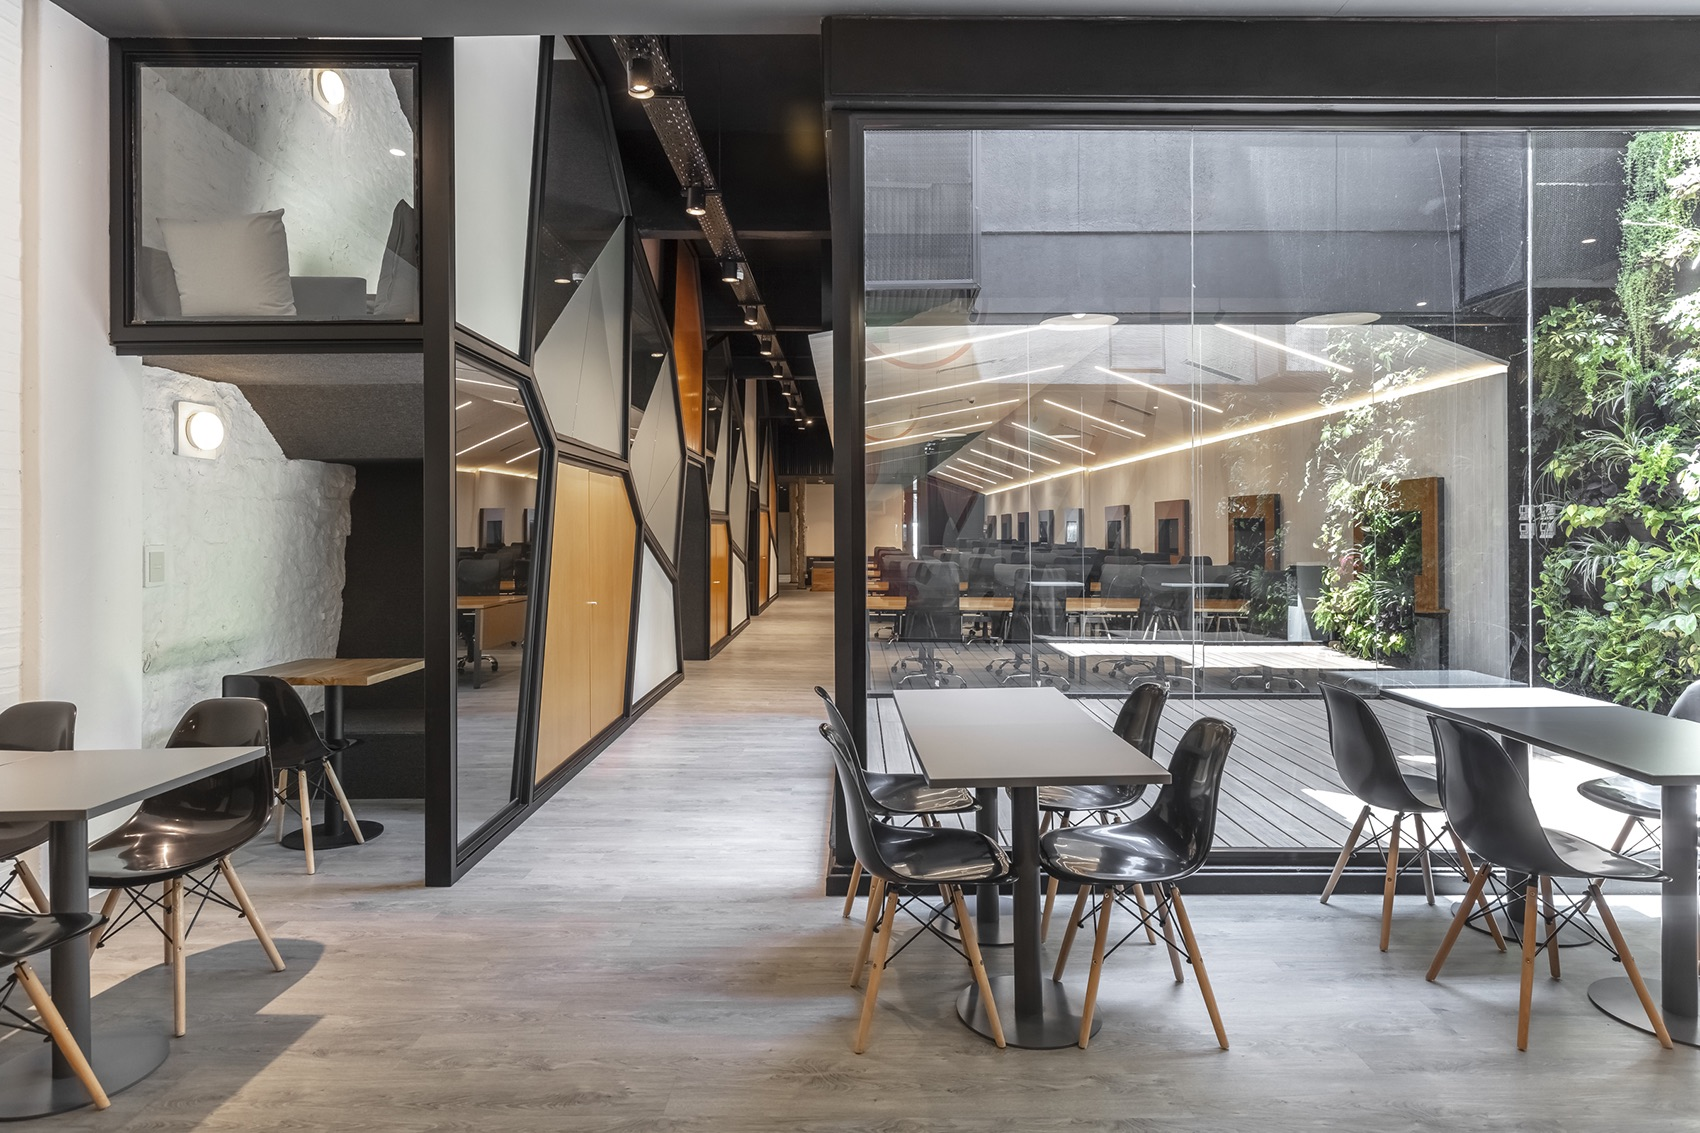 uala-office-buenos-aires-17